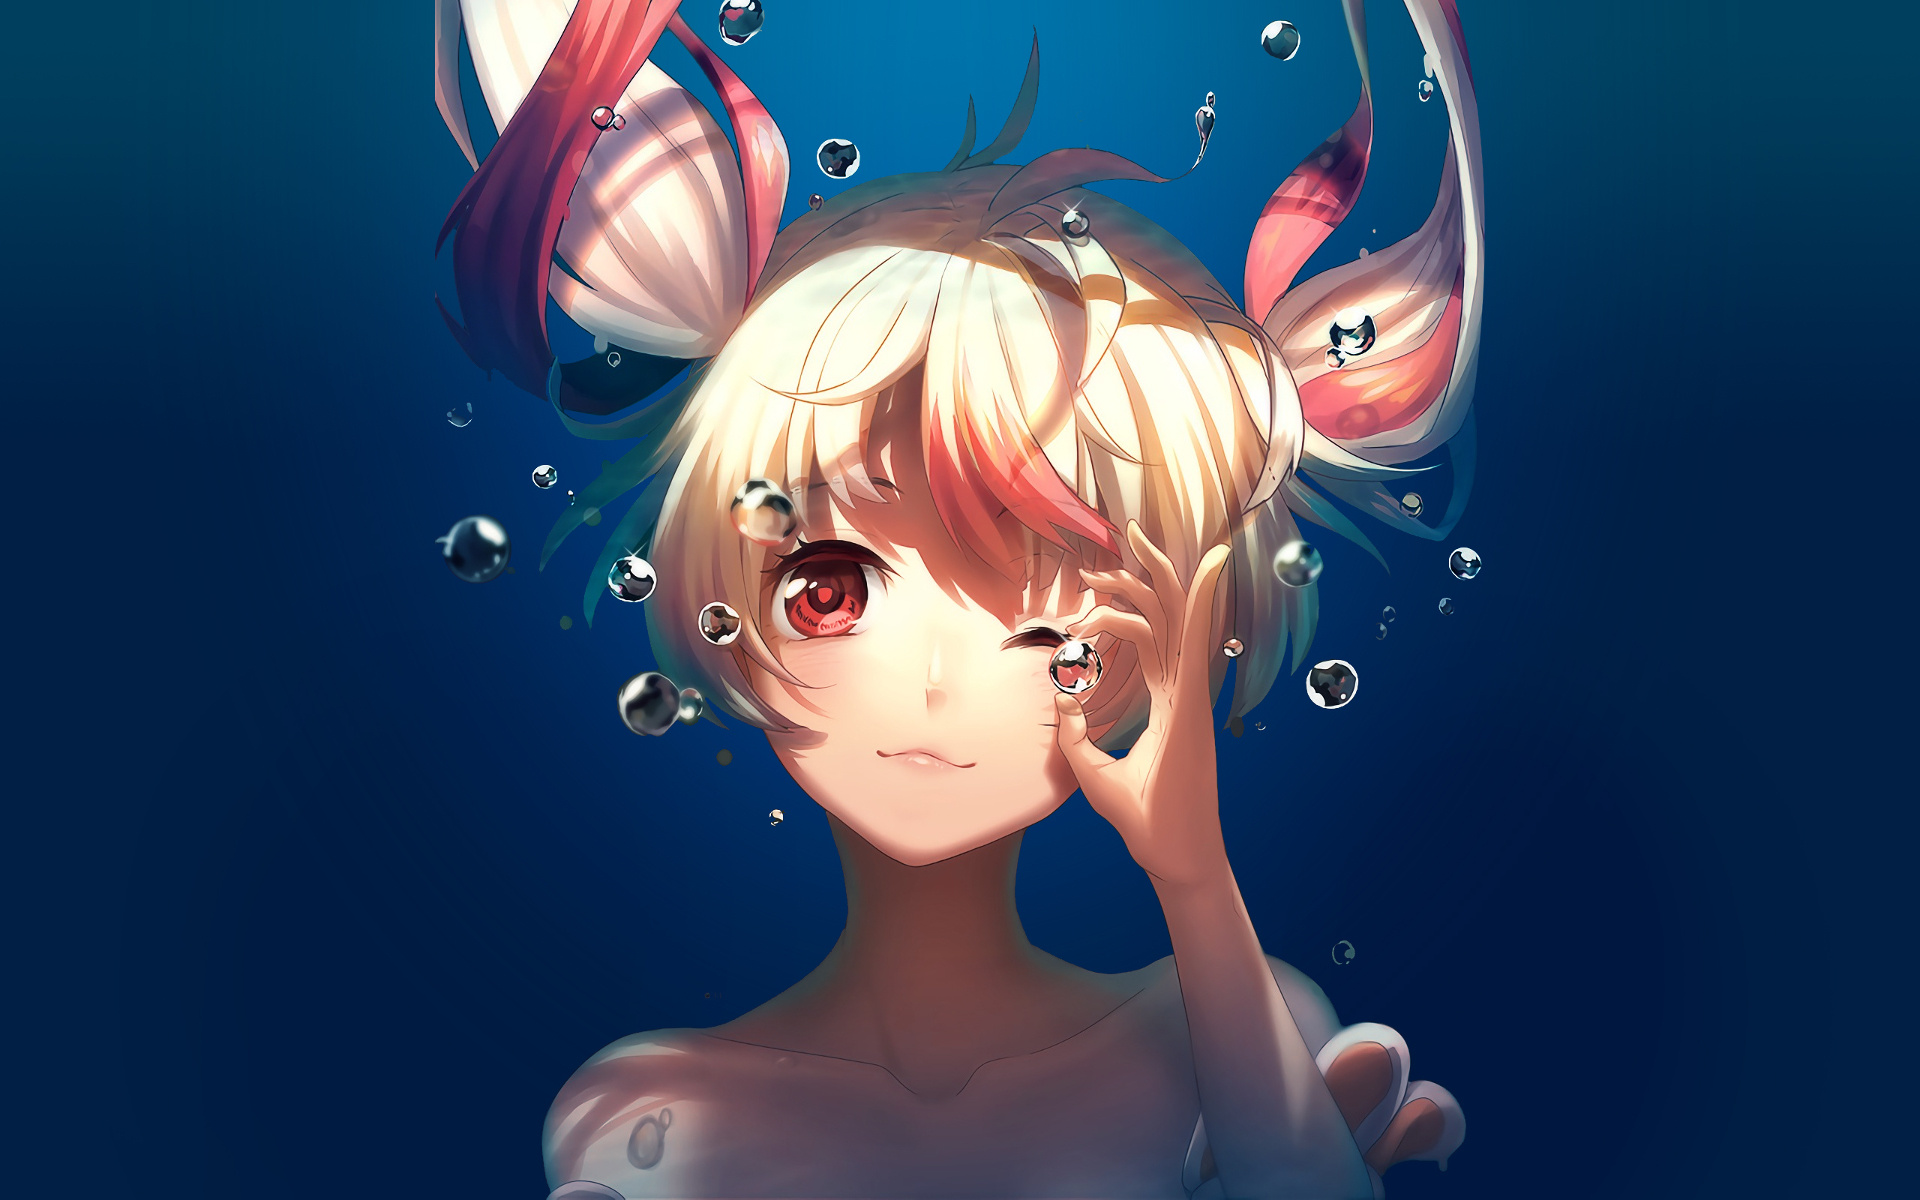 Bubble, underwater, cute, anime girl, Gonna be the Twin-Tail!!, 1920x1200 wallpaper